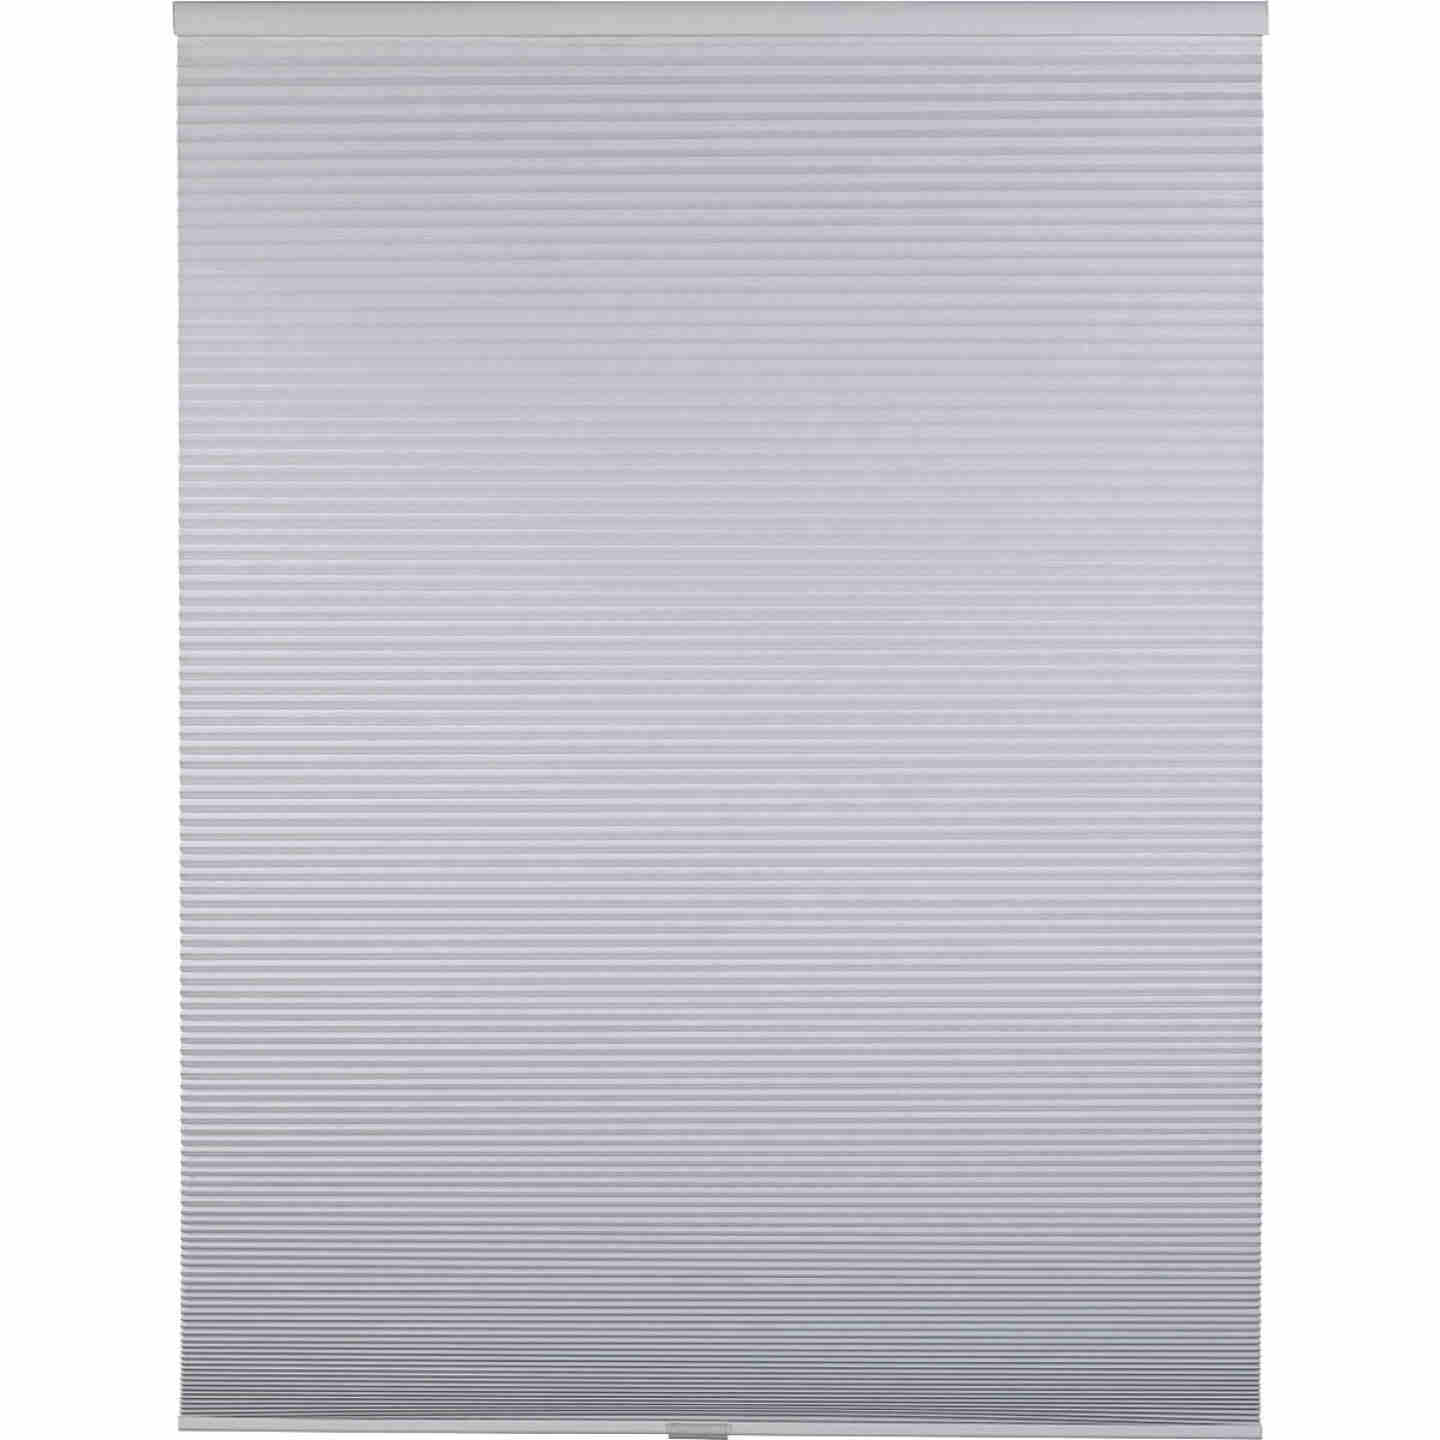 Home Impressions 1 In. Room Darkening Cellular White 60 In. x 72 In. Cordless Shade Image 1